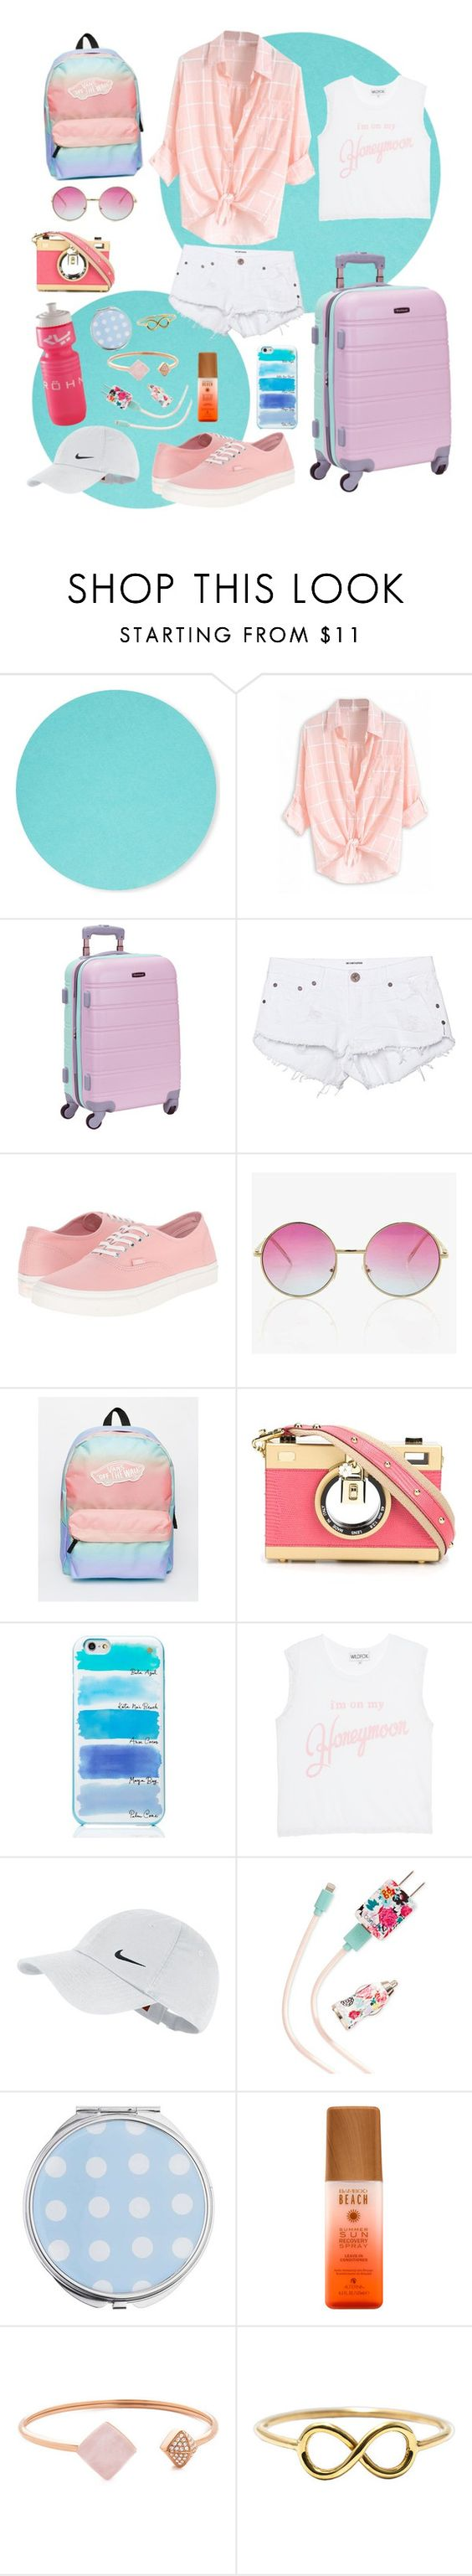 """""""TRAVELING"""" by yikkei ❤ liked on Polyvore featuring Design Letters, Rockland Luggage, One Teaspoon, Vans, Dolce&Gabbana, Kate Spade, Wildfox, NIKE, ban.do and Miss Selfridge"""